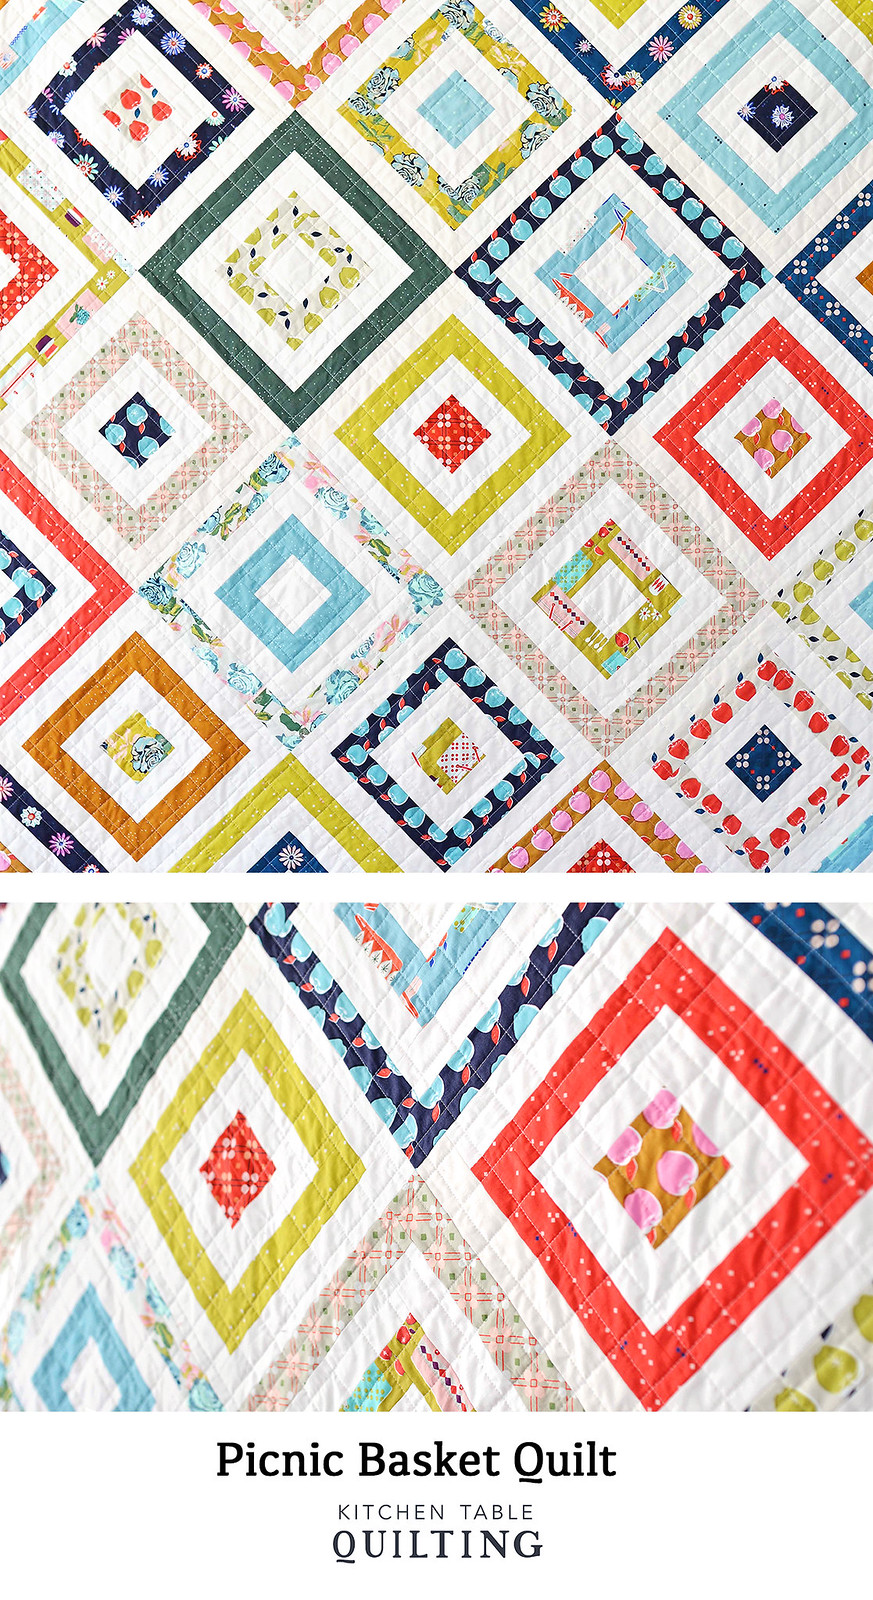 Picnic Basket Quilt - Kitchen Table Quilting